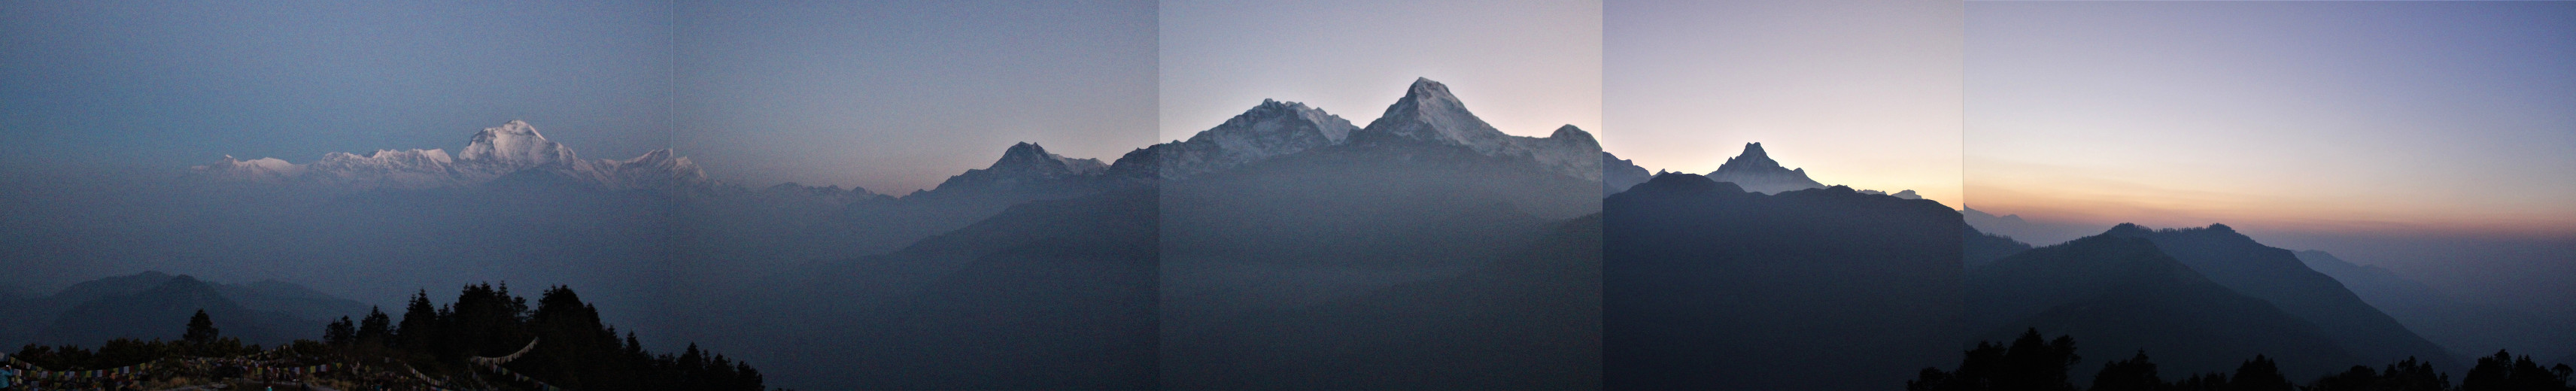 Annapurna Mountain Range from Poon Hill